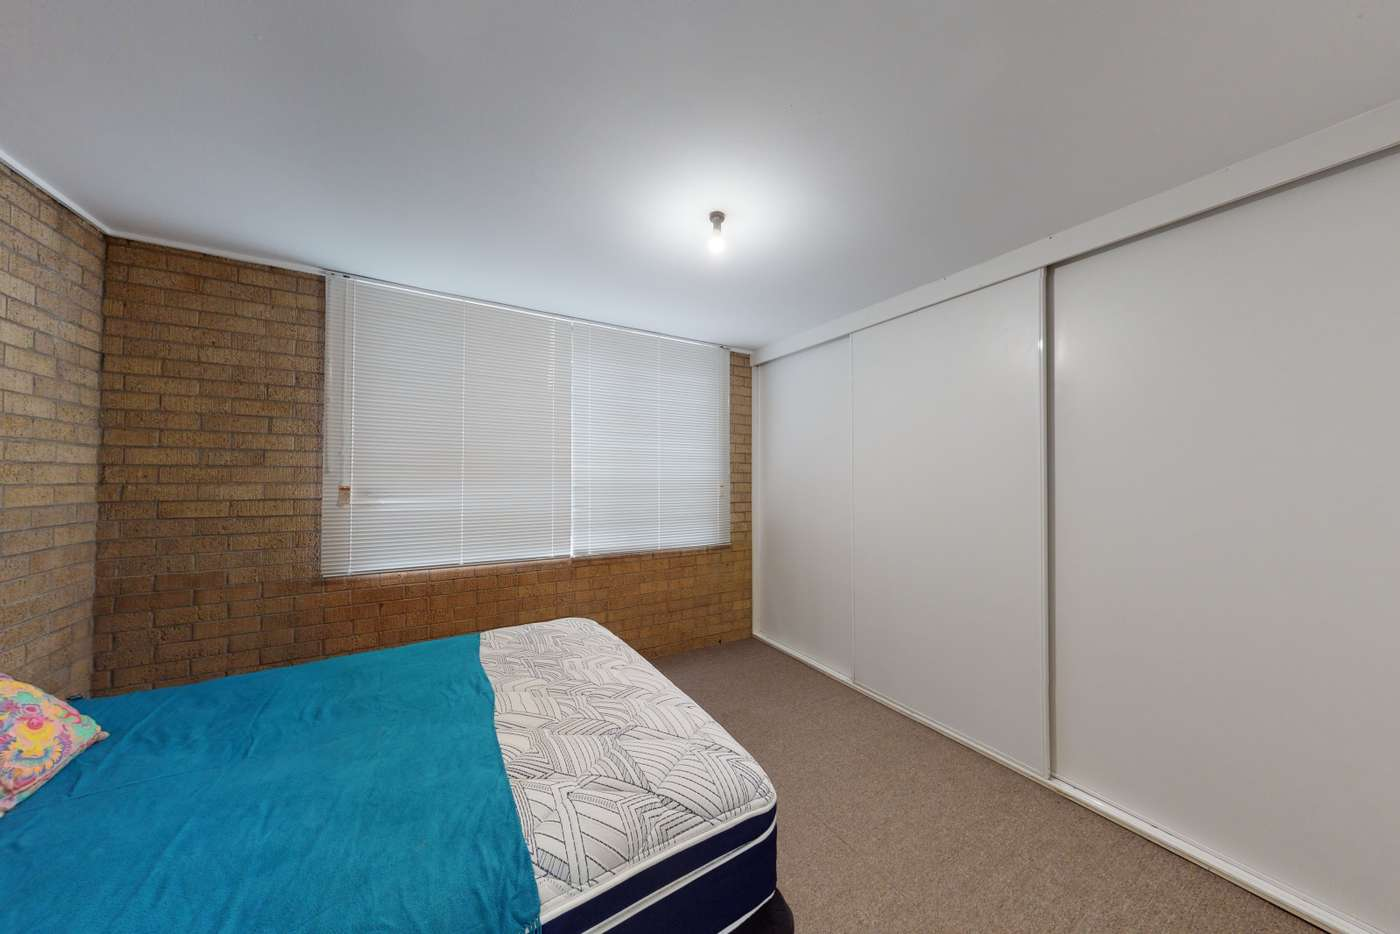 Sixth view of Homely unit listing, 12/59 Sandford Street, St Lucia QLD 4067